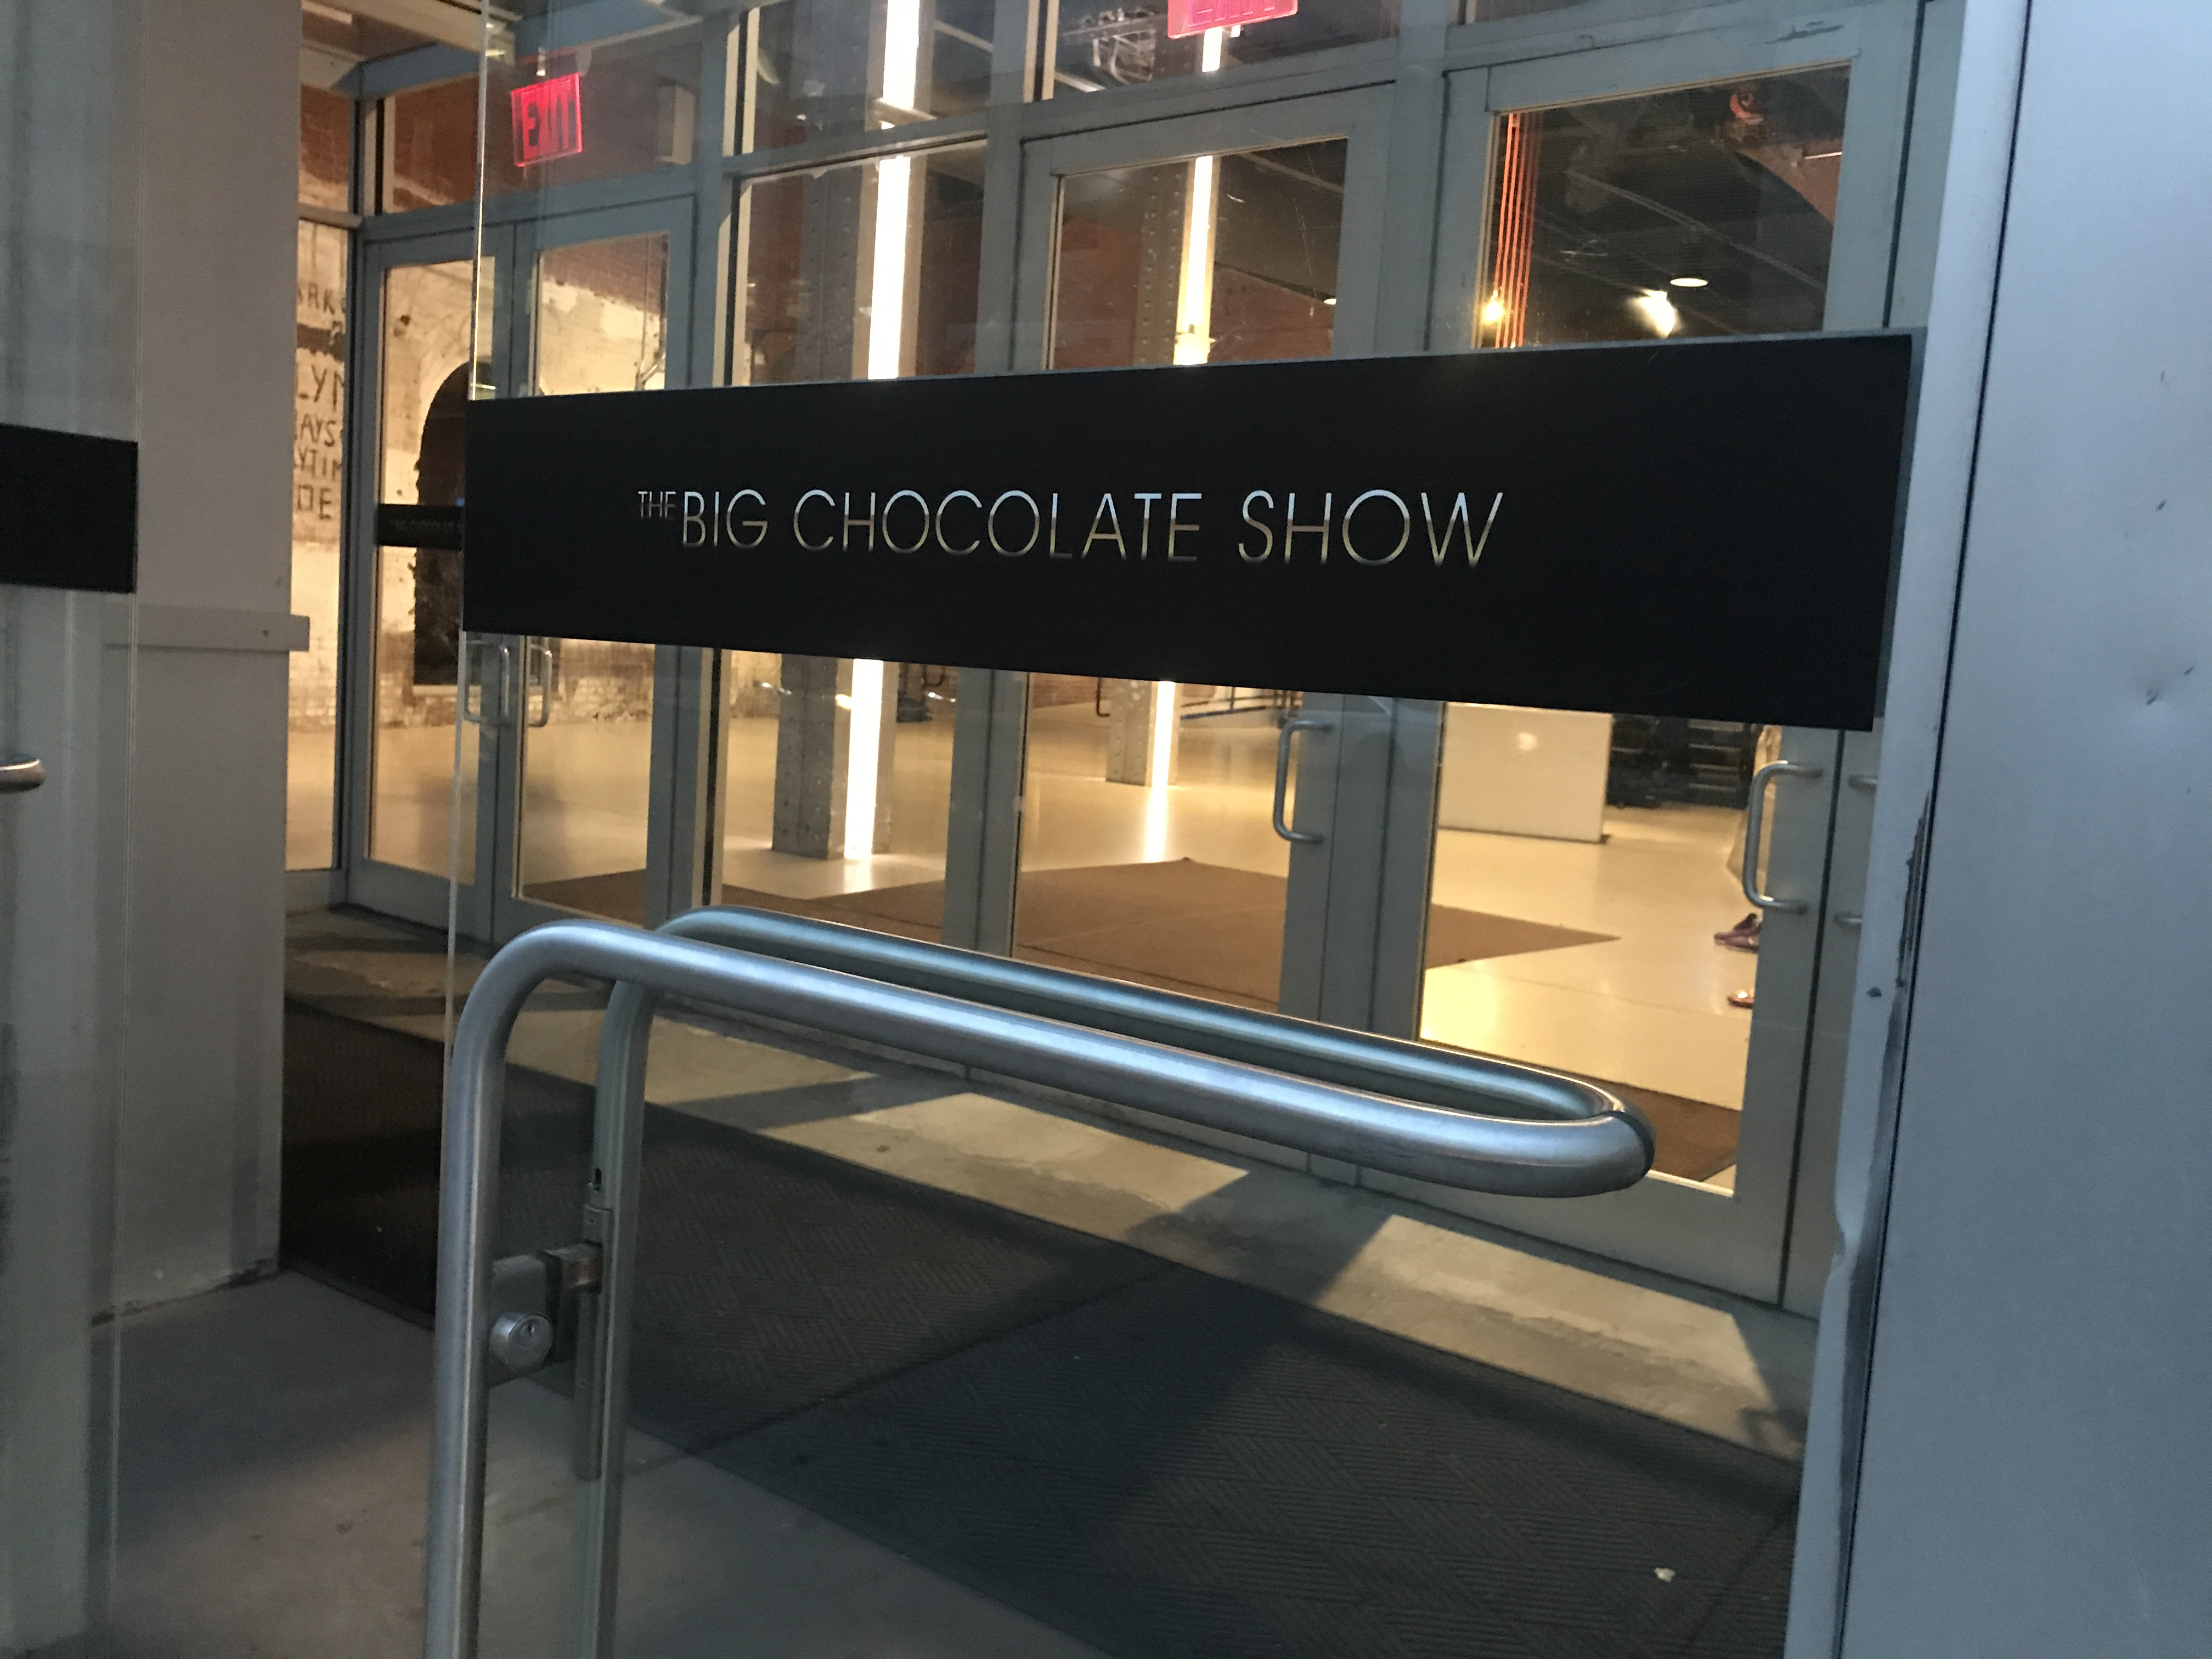 The Big Chocolate Show at the Waterfront